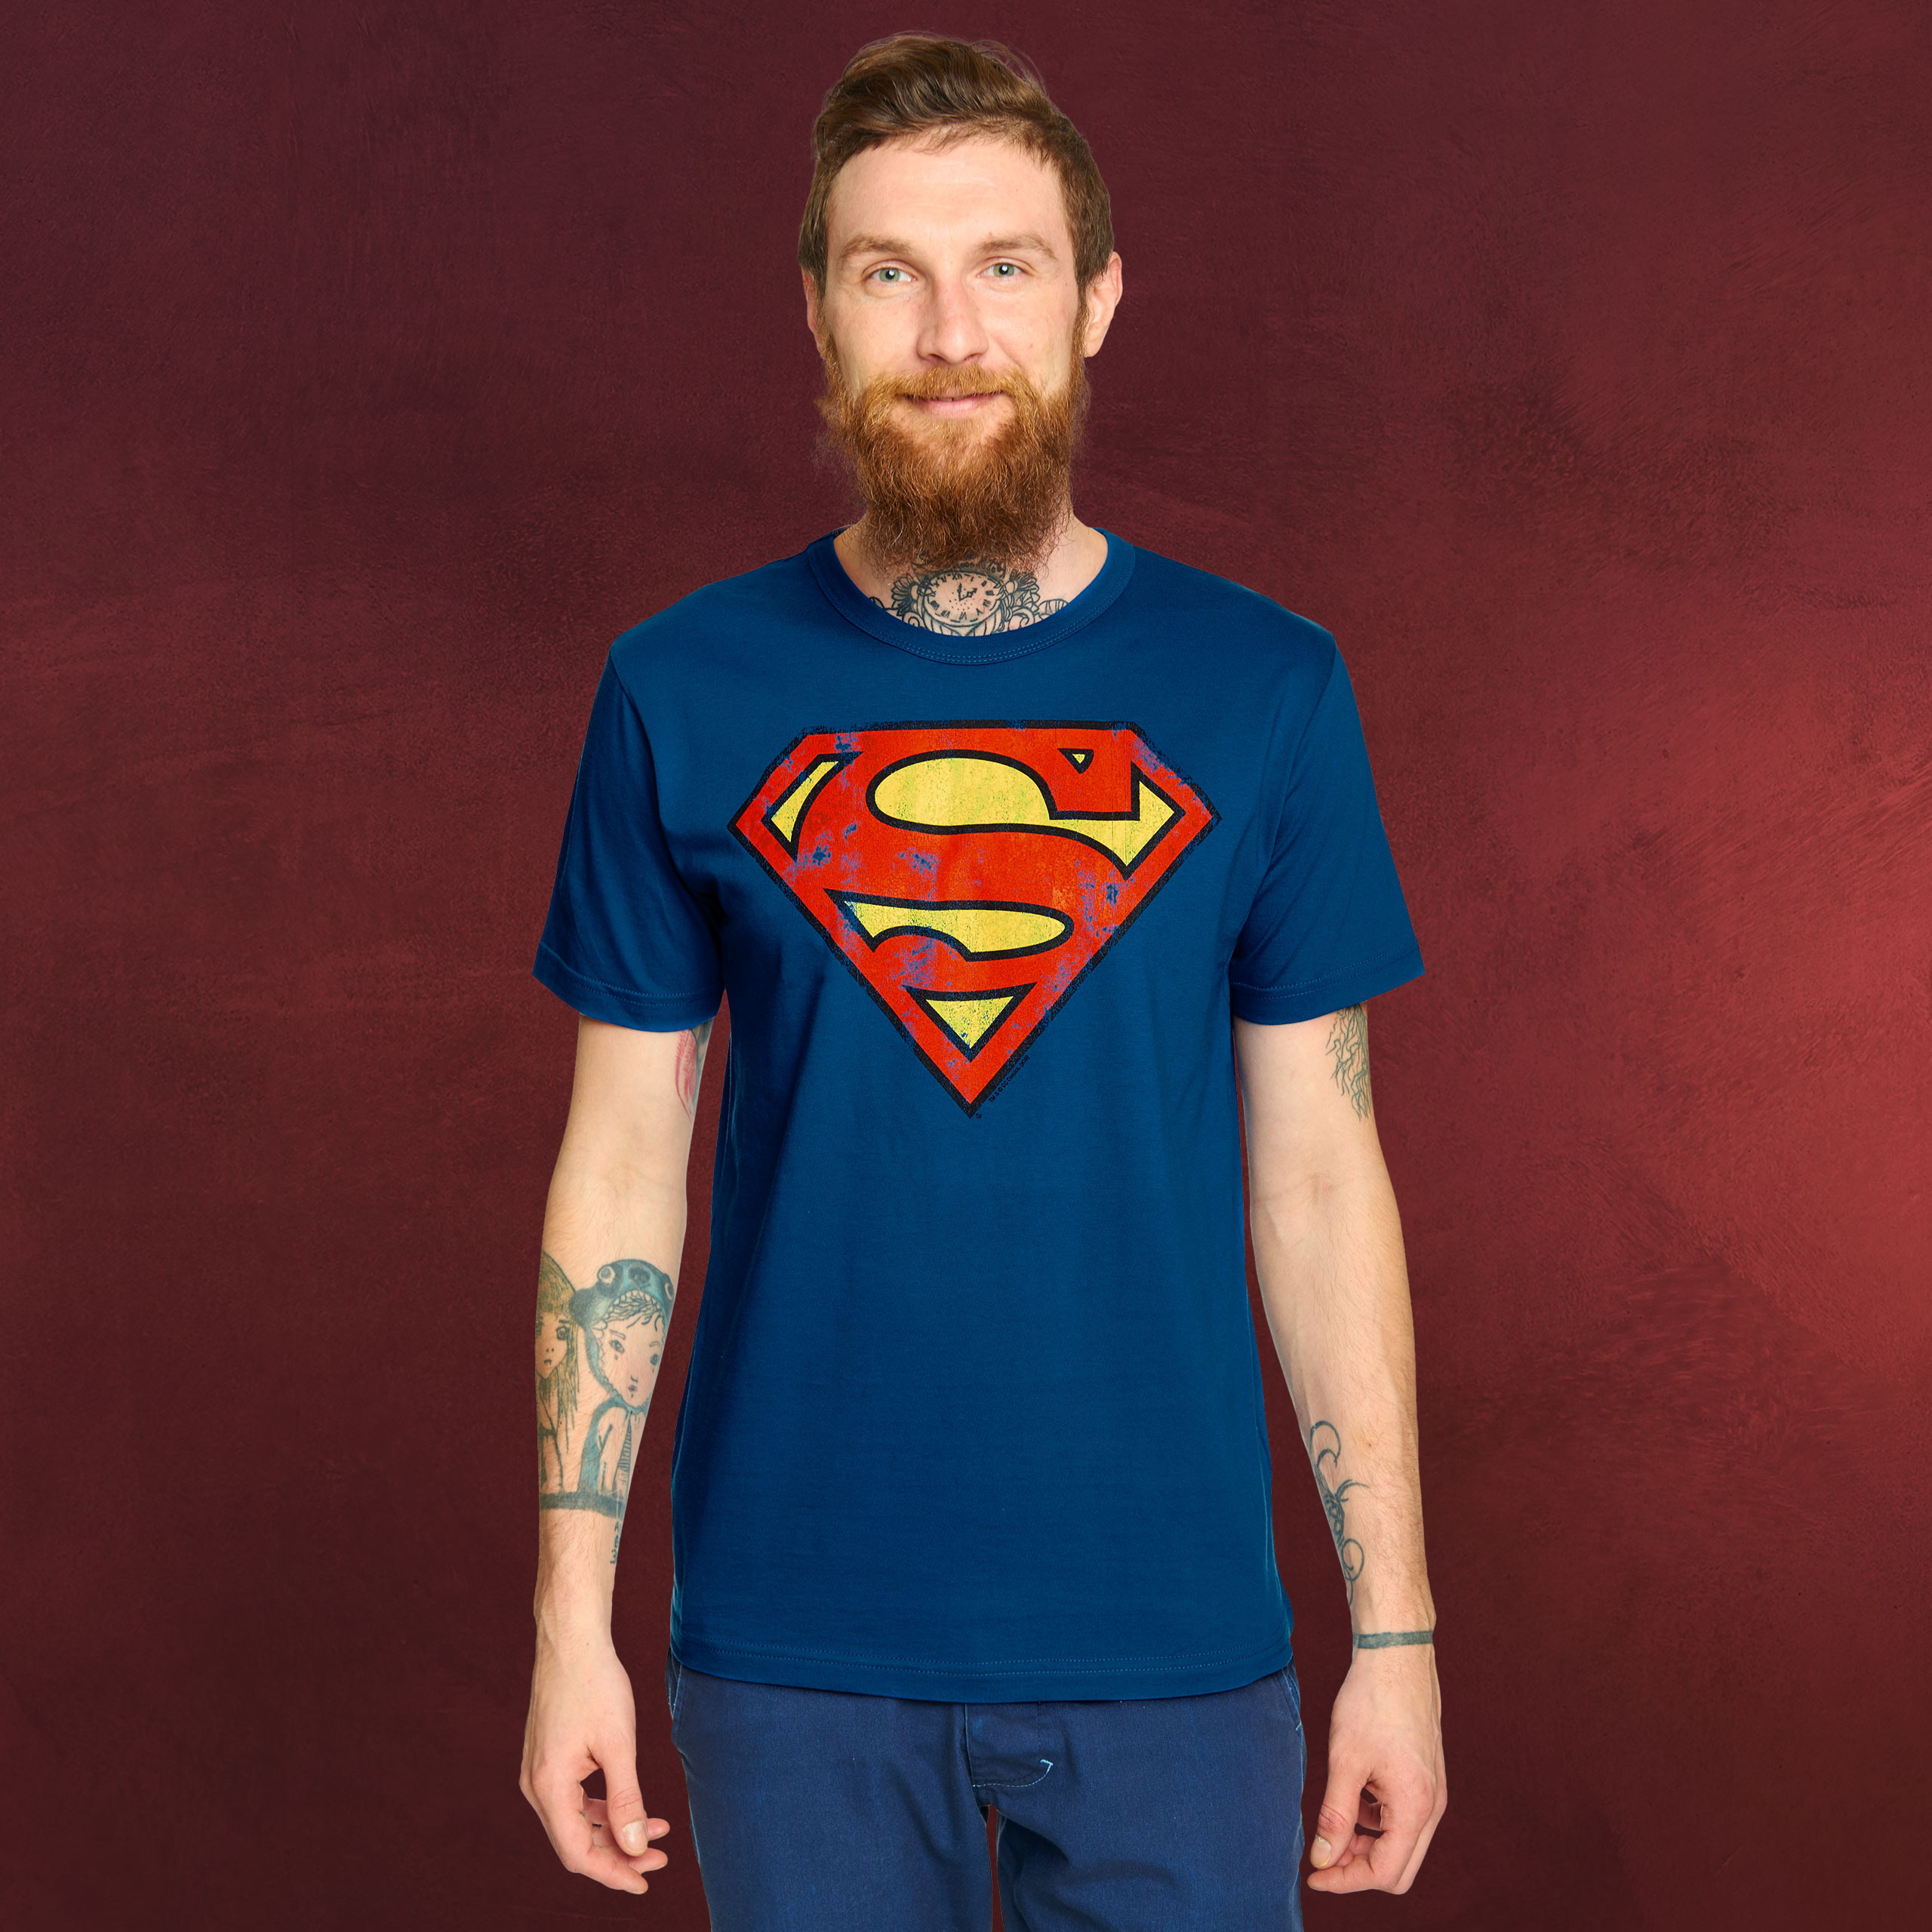 Superman logo t-shirt, superhelden motiv, comic held, lässiger retro